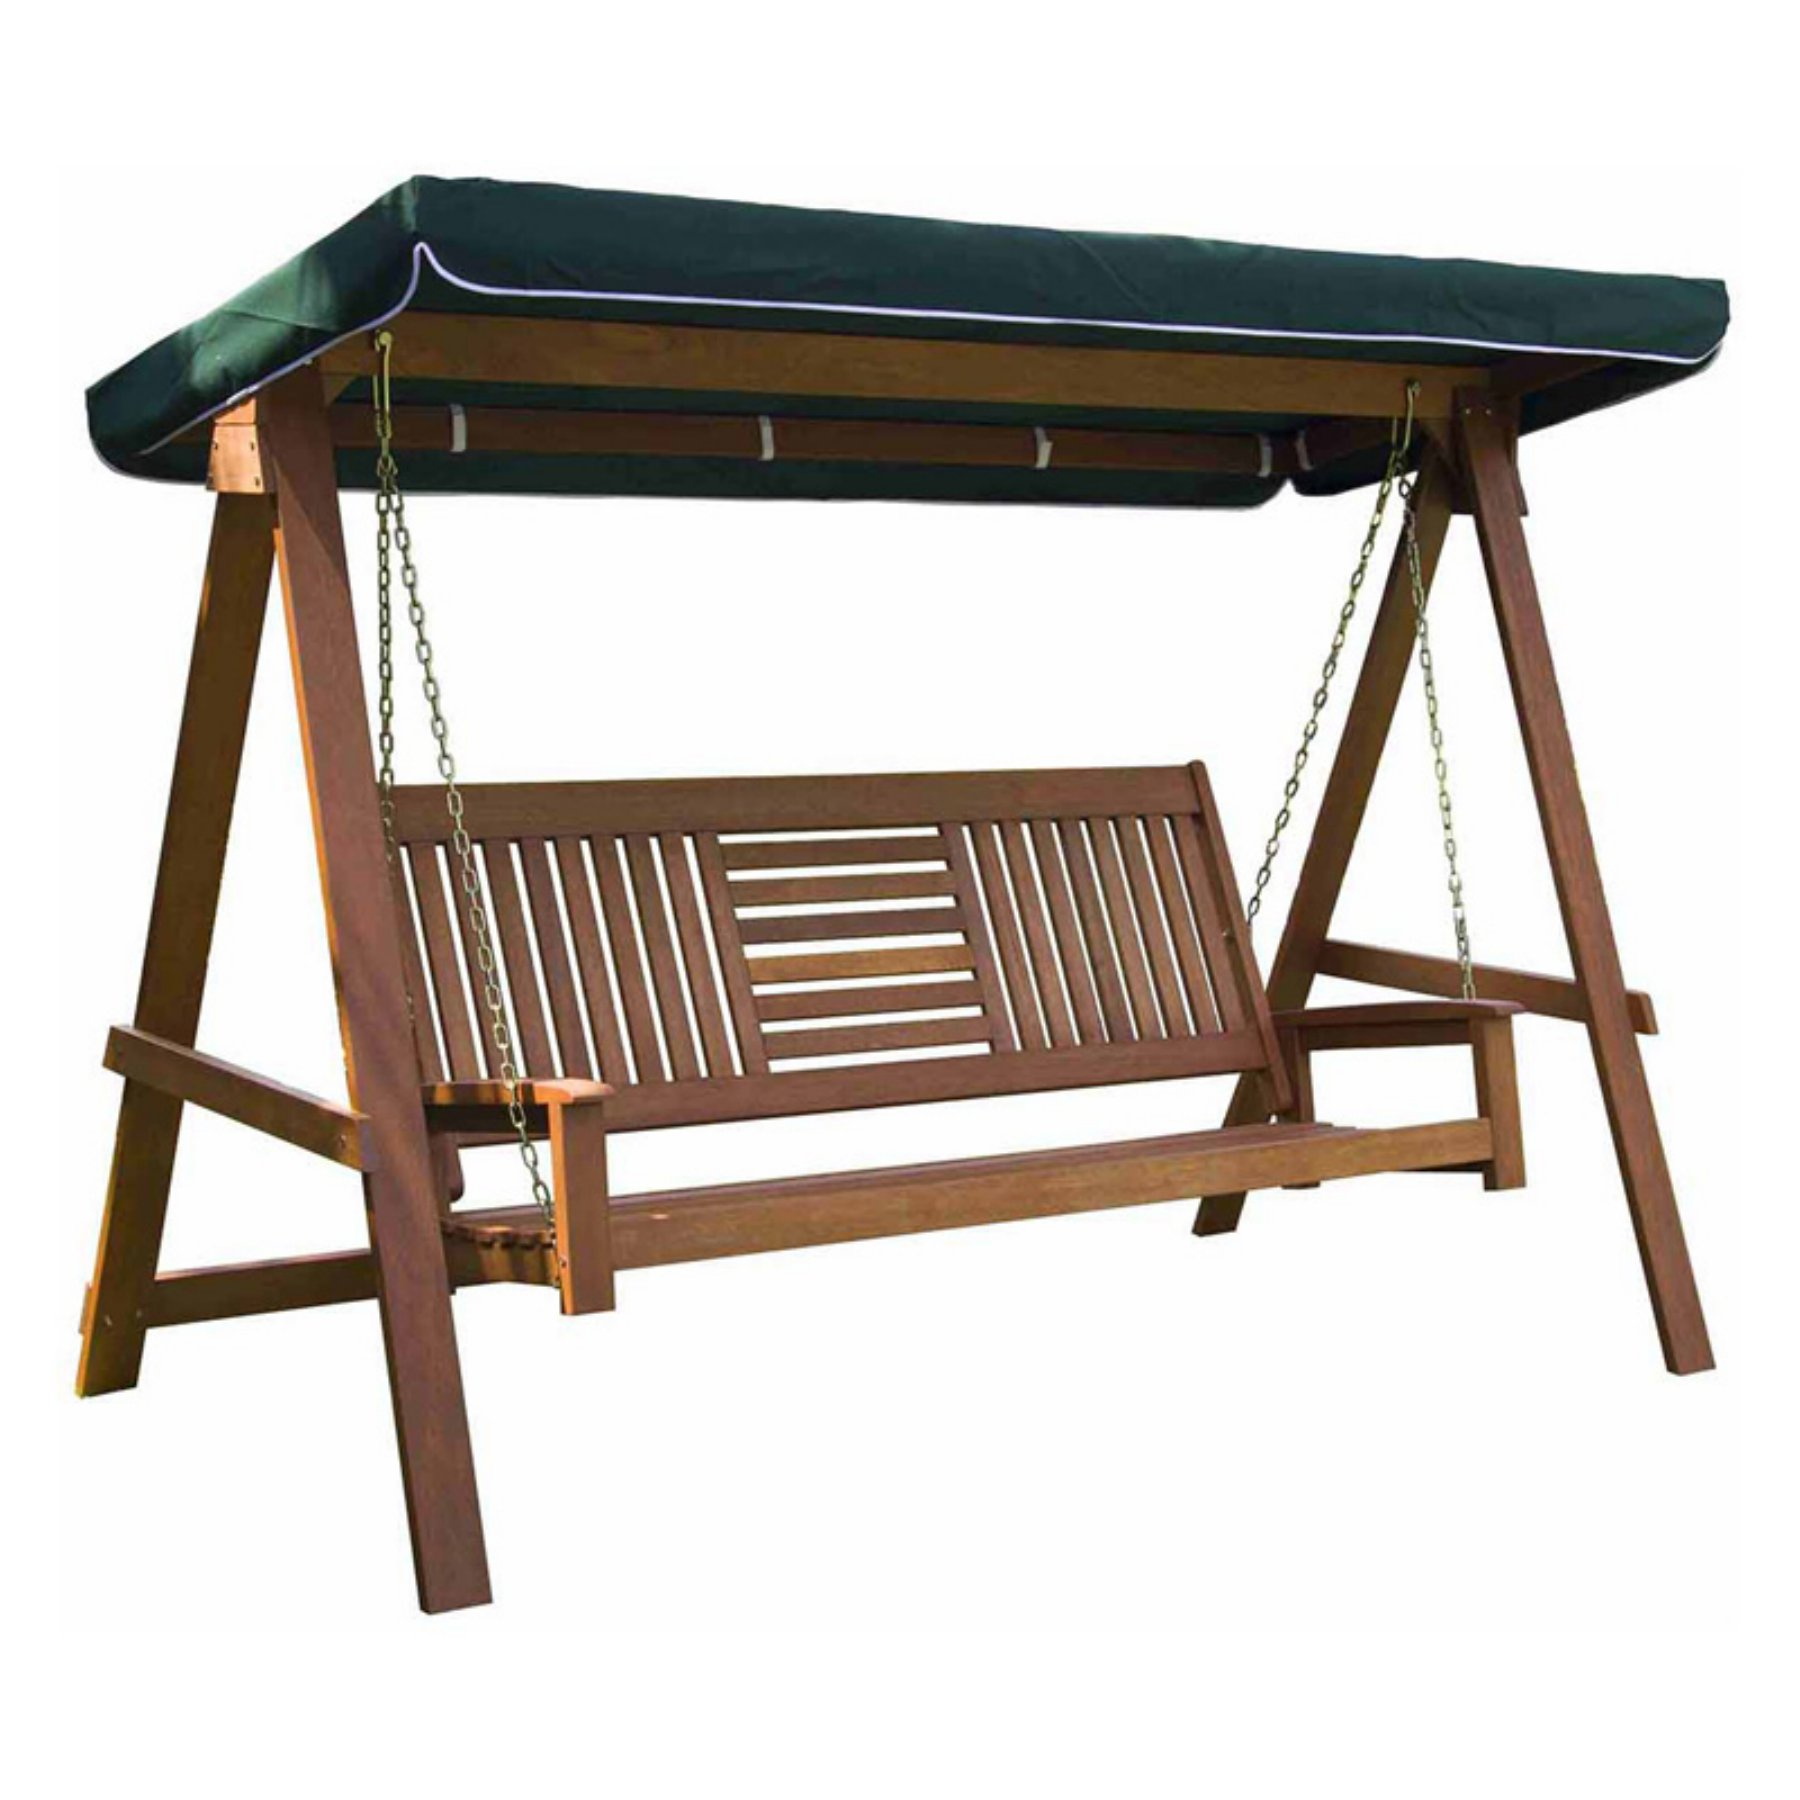 Sunjoy wood seater porch swing with canopy products